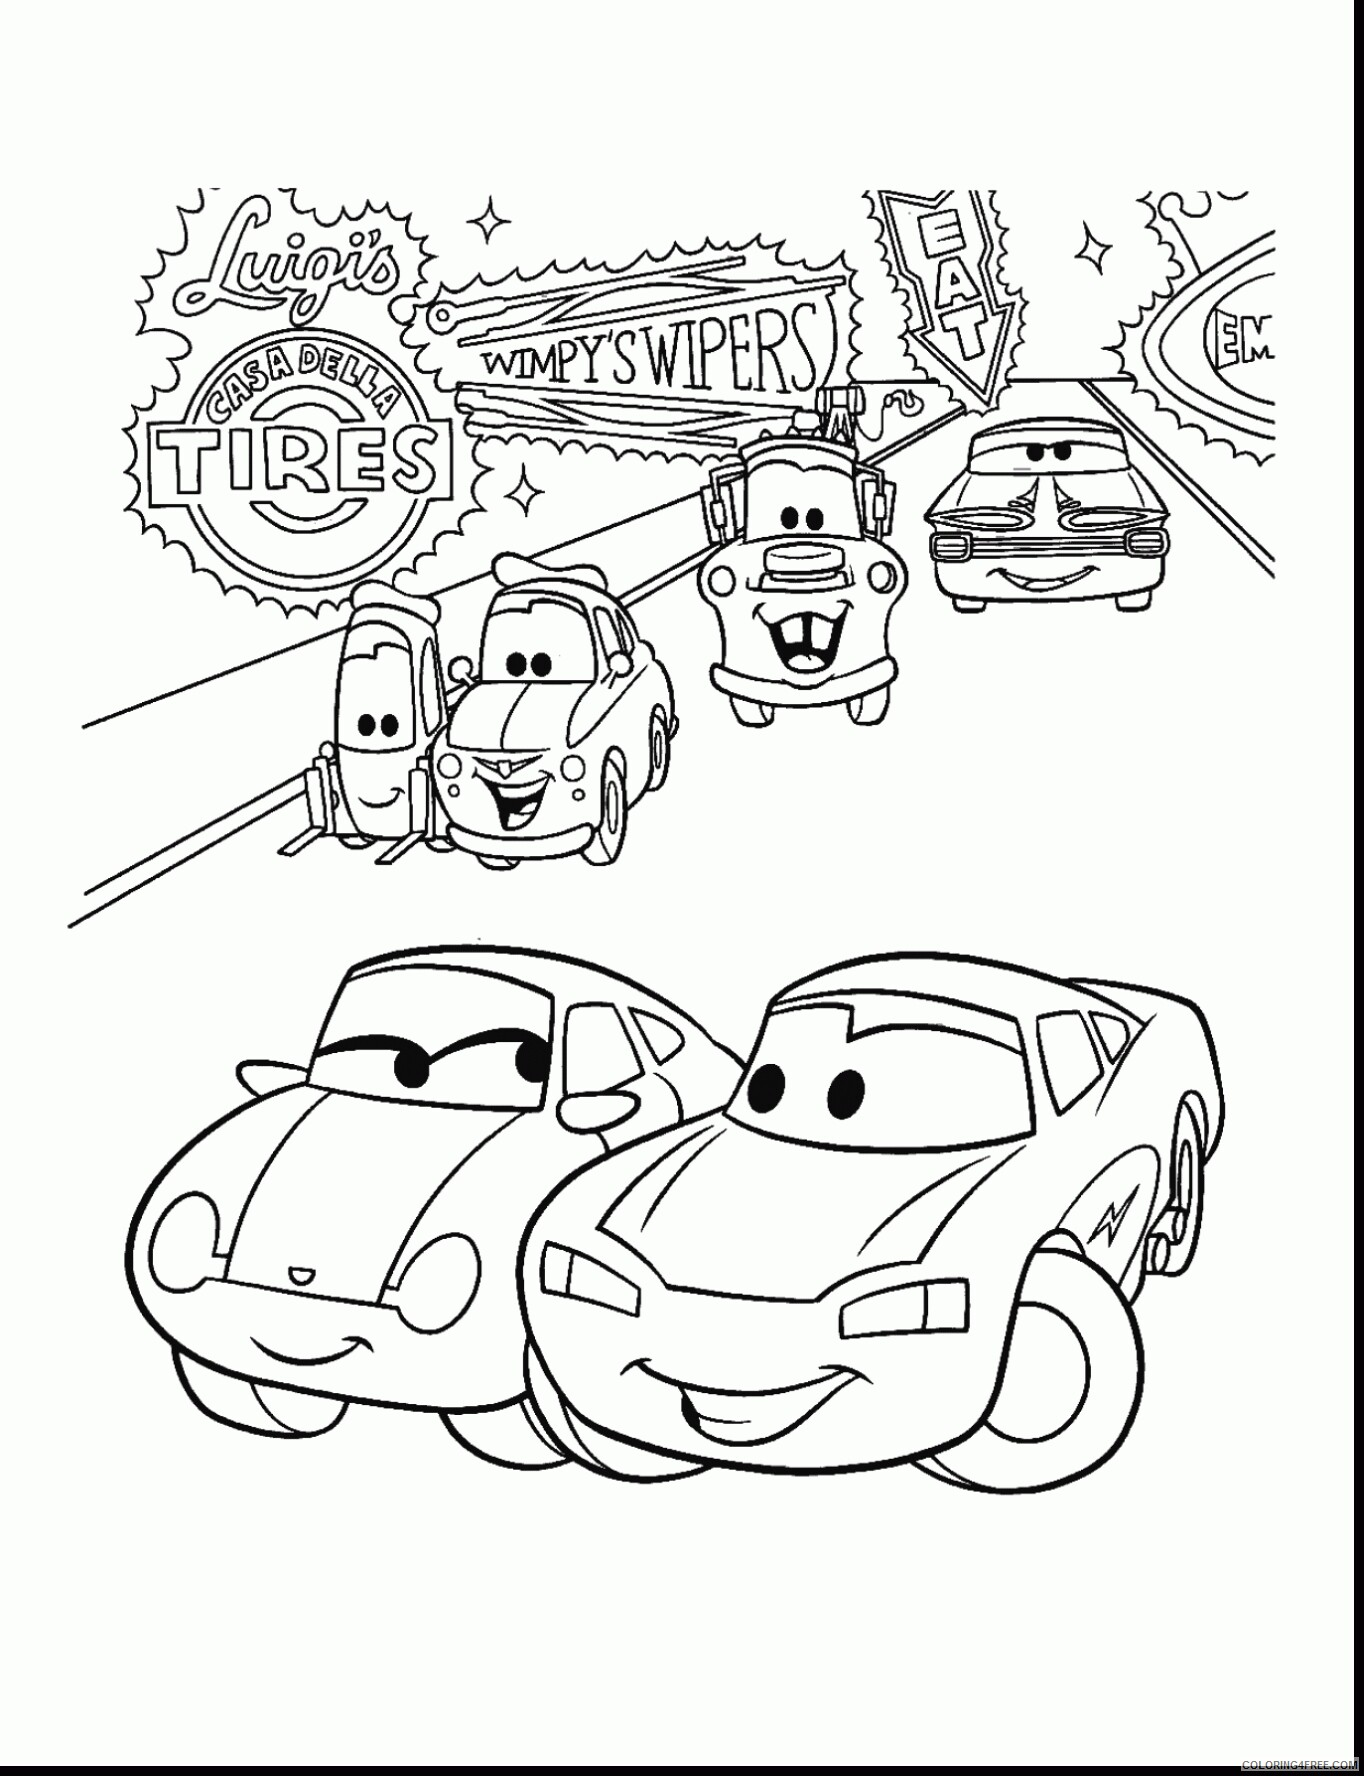 Cars Coloring Pages TV Film magic lightning mcqueen collection books 2020 01786 Coloring4free